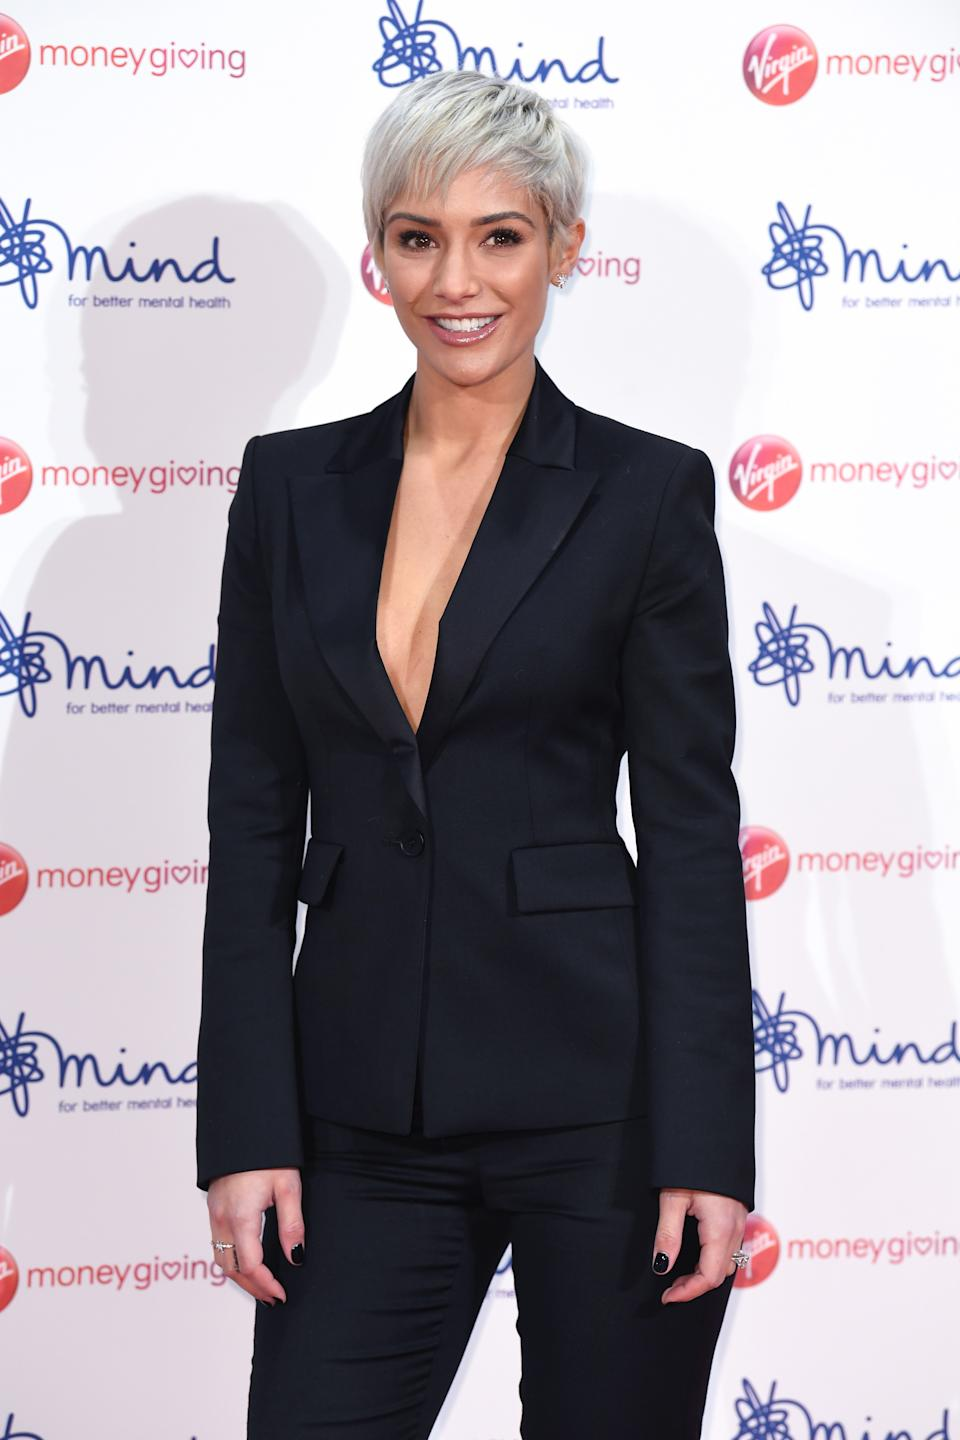 Frankie Bridge arriving at the Virgin Money Giving Mind Media Awards, Odeon Leicester Square, London. Photo credit should read: Doug Peters/EMPICS Entertainment